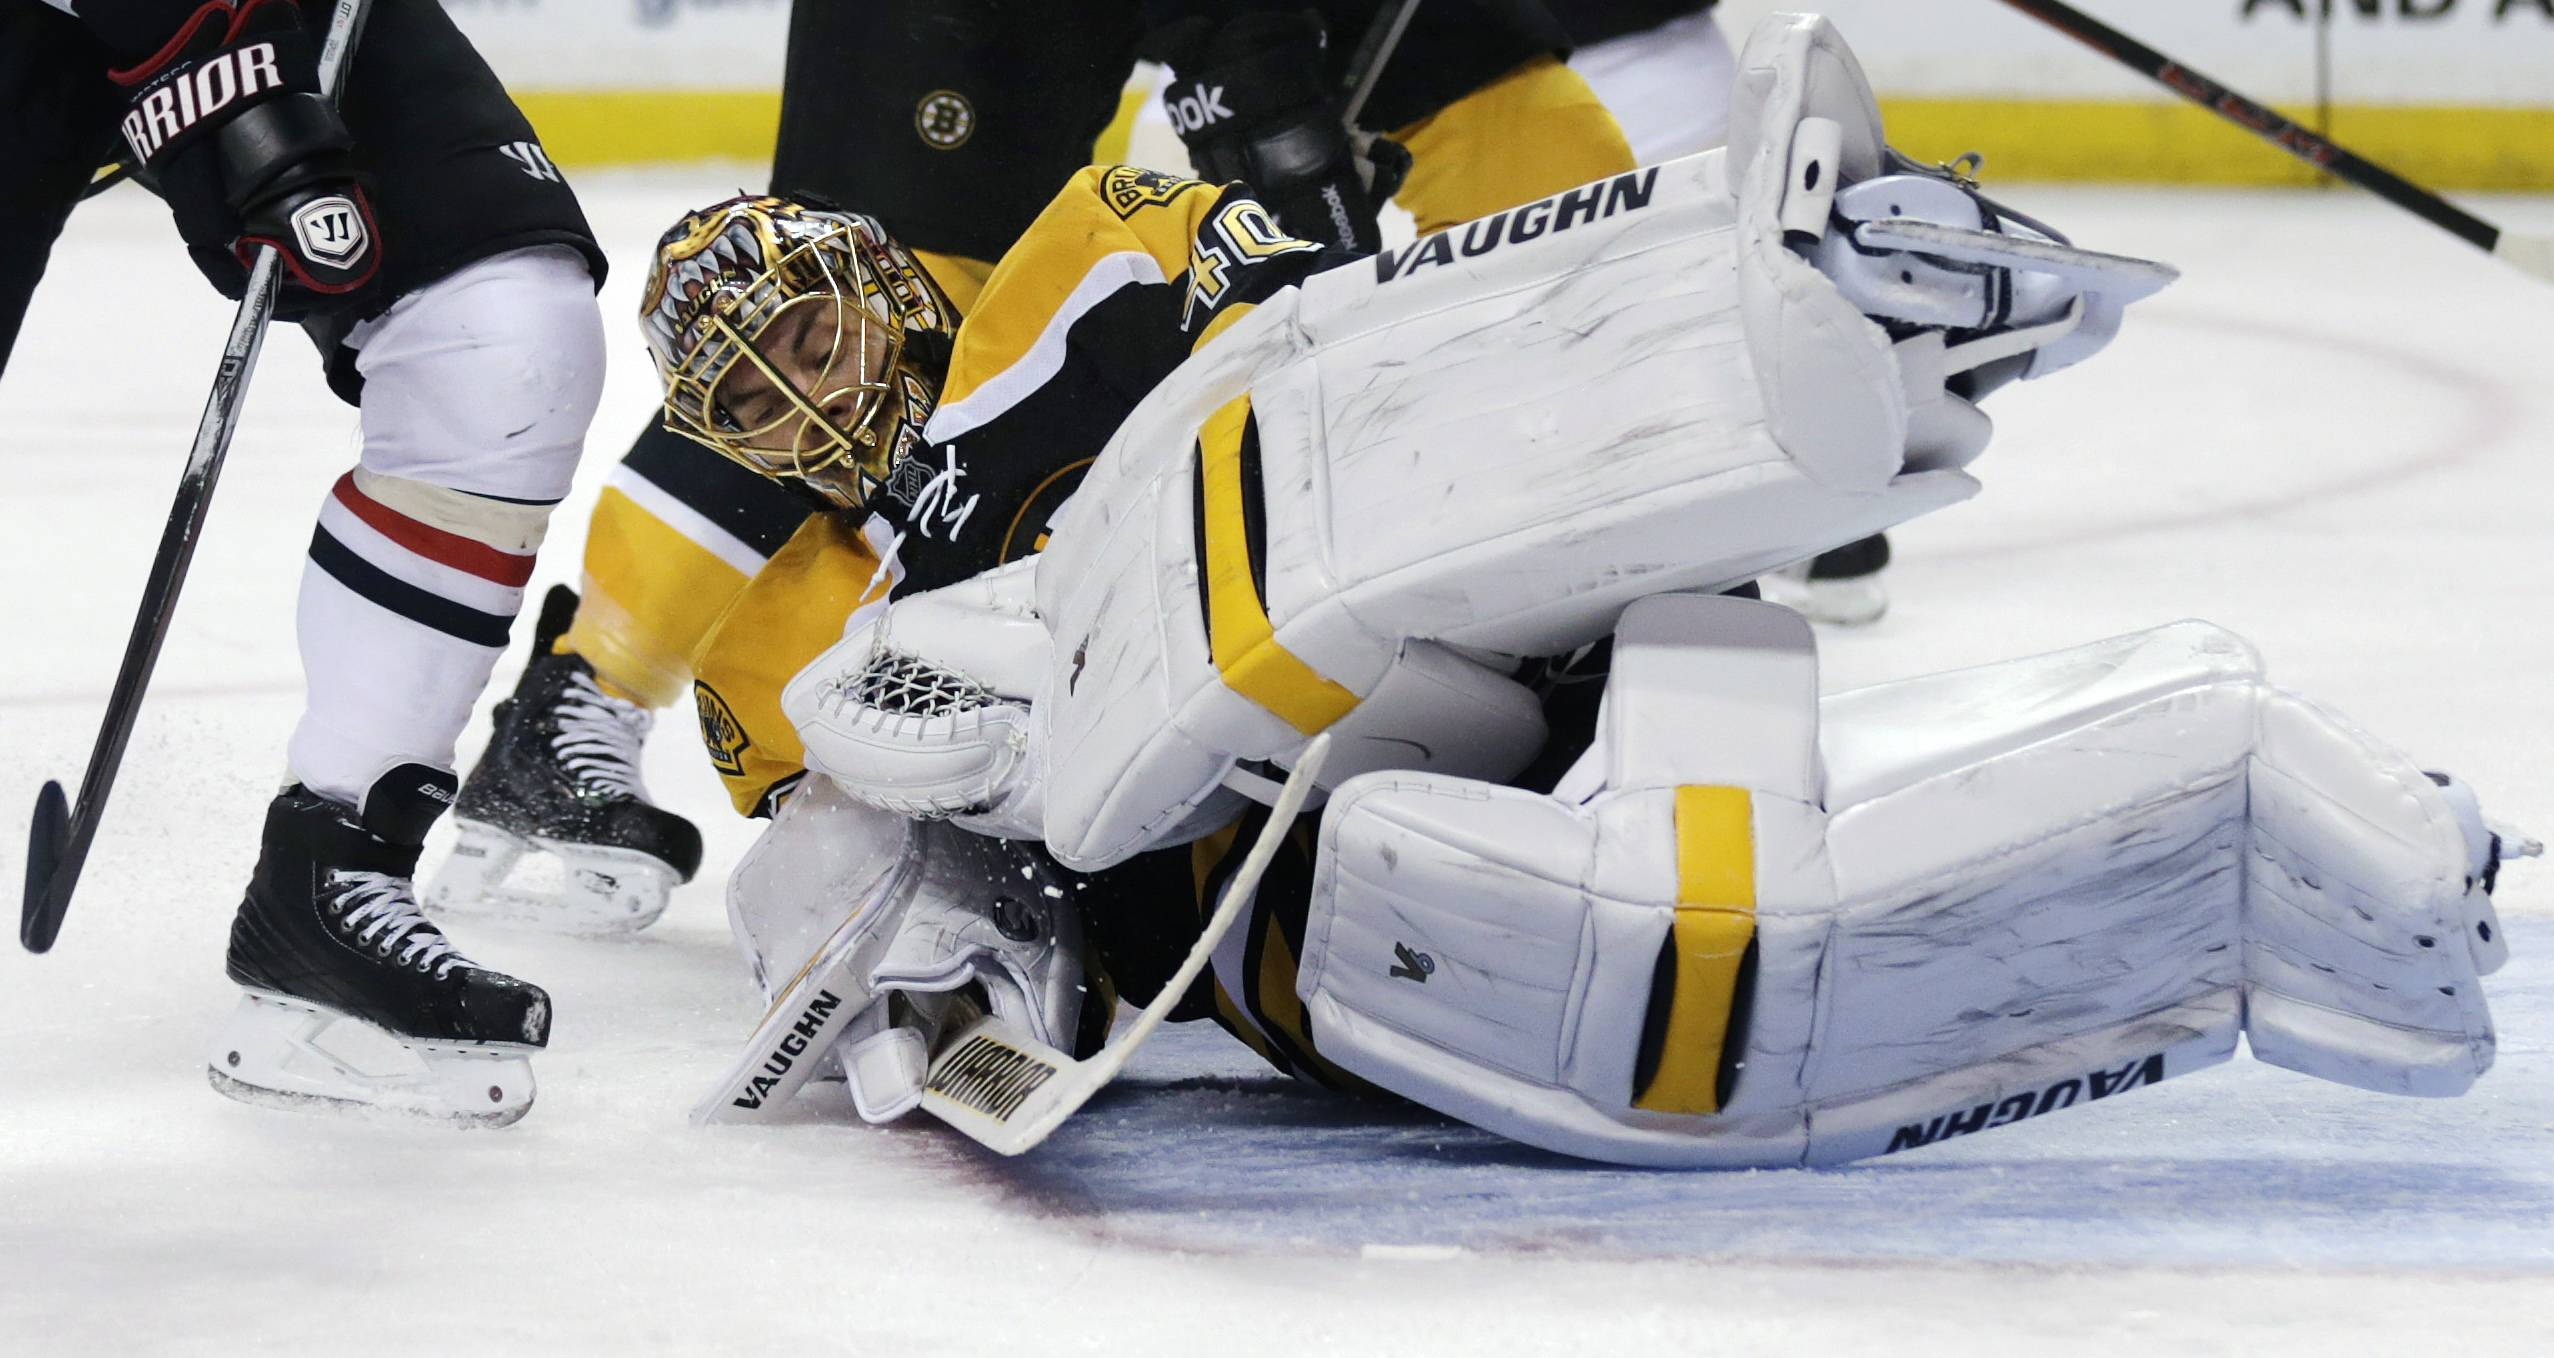 Tuukka Rask drops to the ice to make a save against the Blackhawks on Thursday night. The Bruins' goalie finished with 28 of them for his seventh shutout of the season